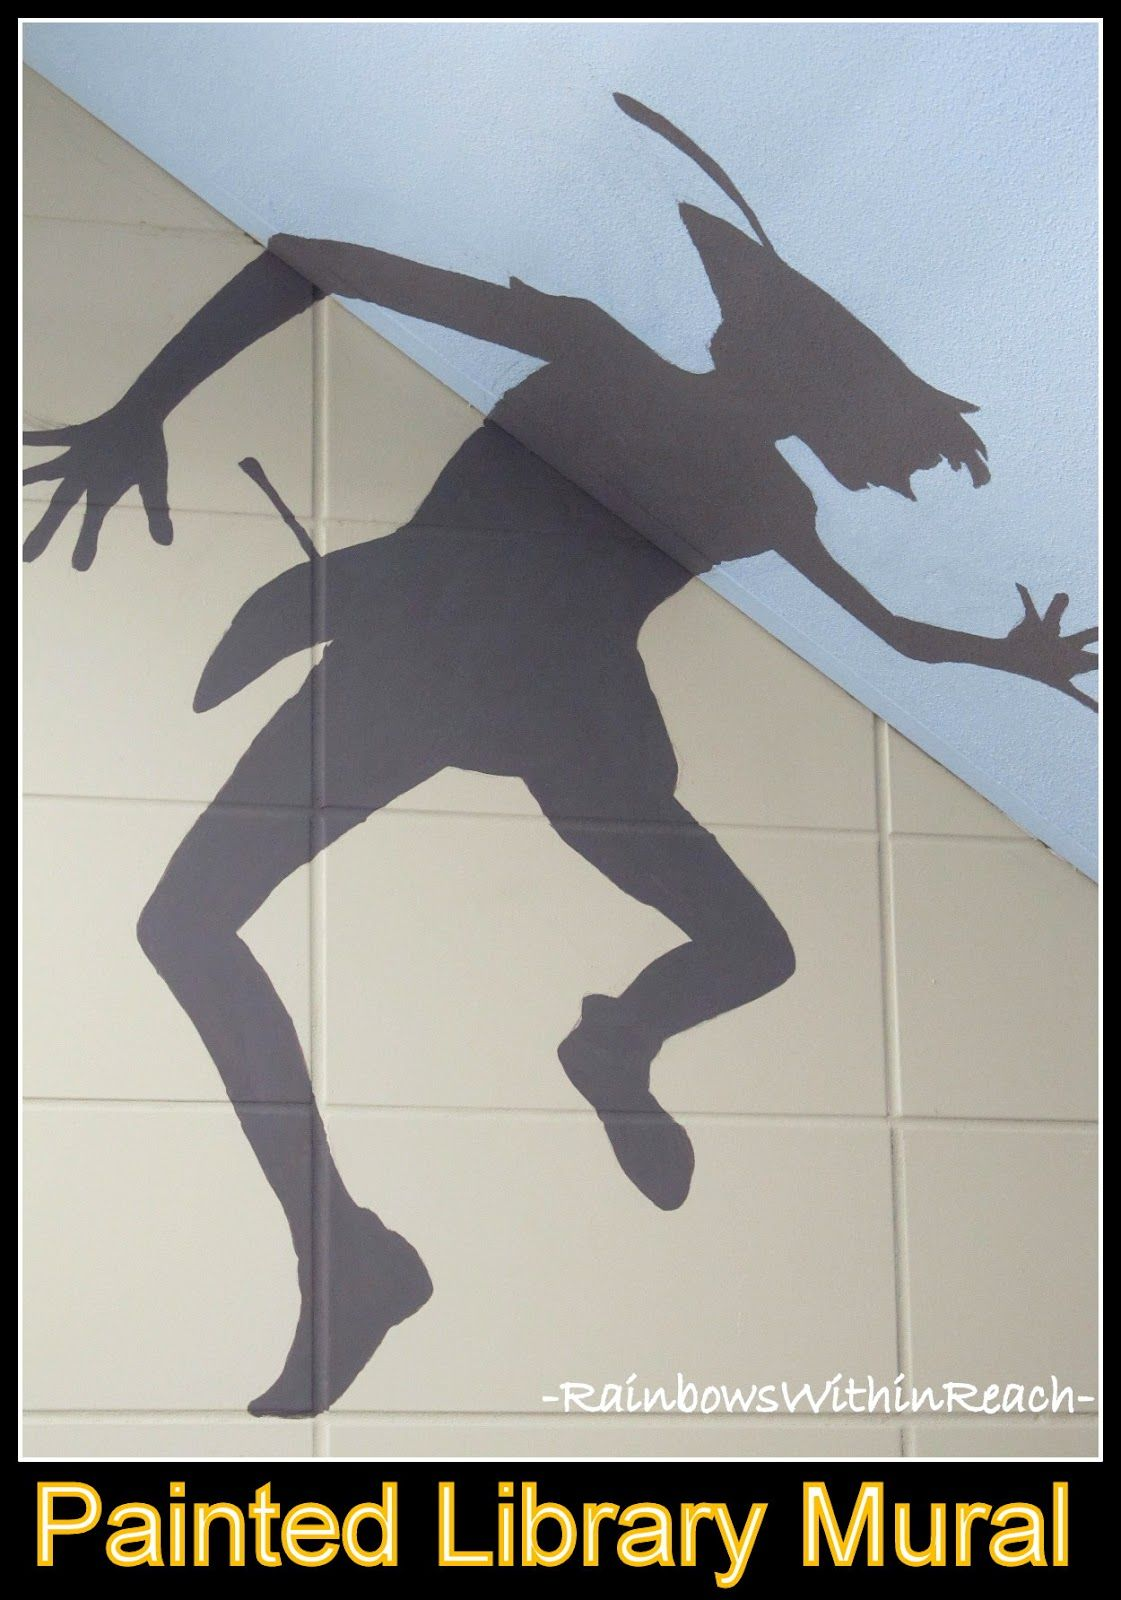 Peter Pan Mural from Public Library